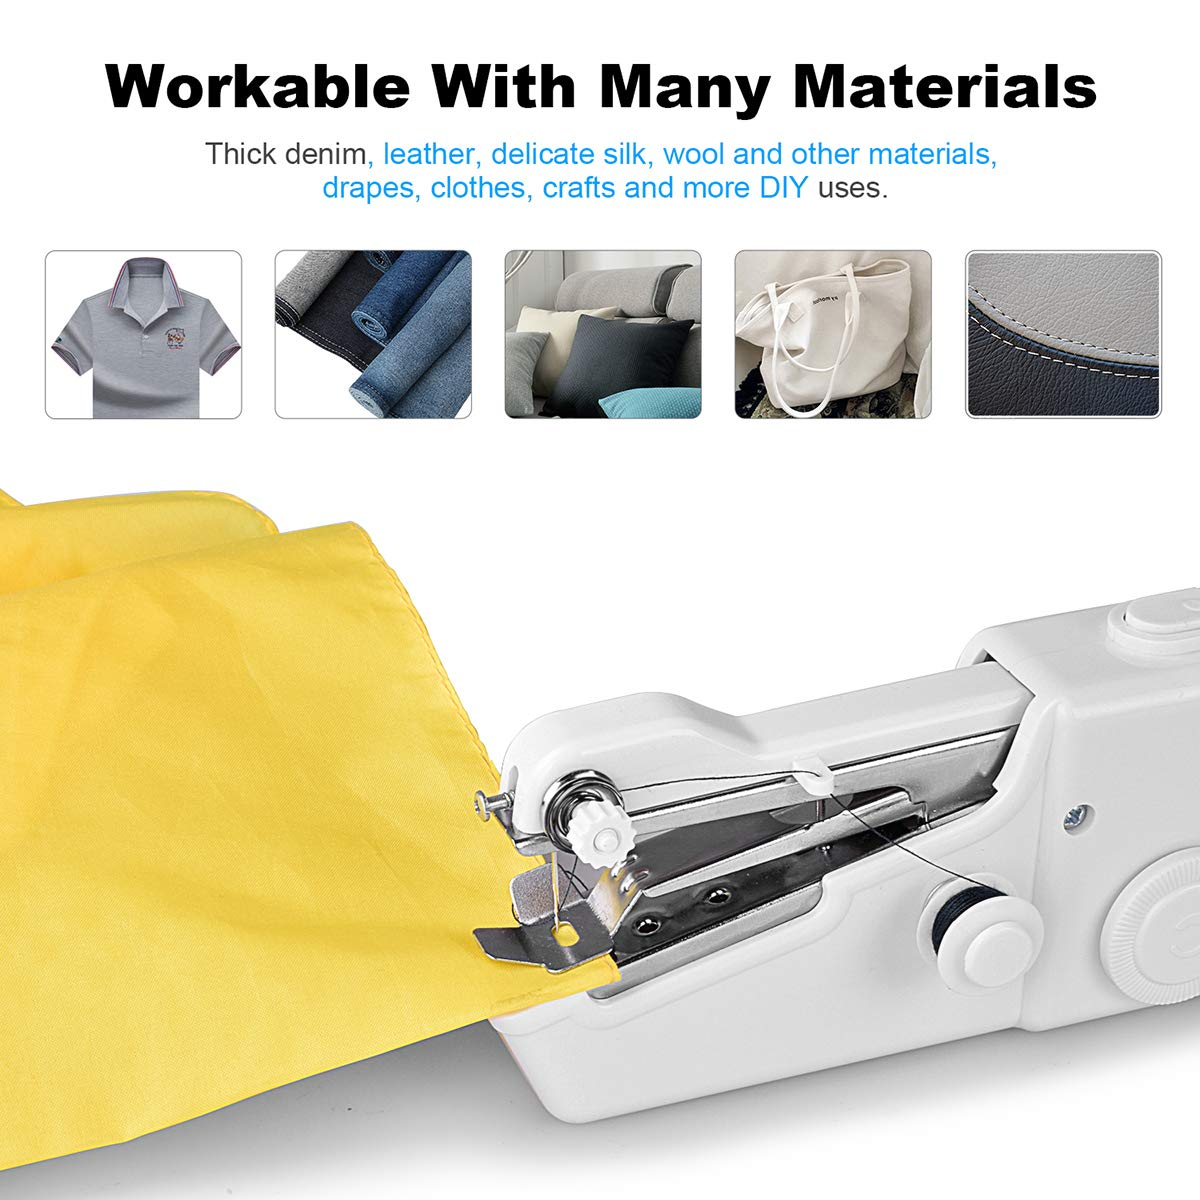 Mini Handheld Stitch Machine Portable Electric Stitch Household Tool for Clothing Fabric Curtain DIY Crafts White